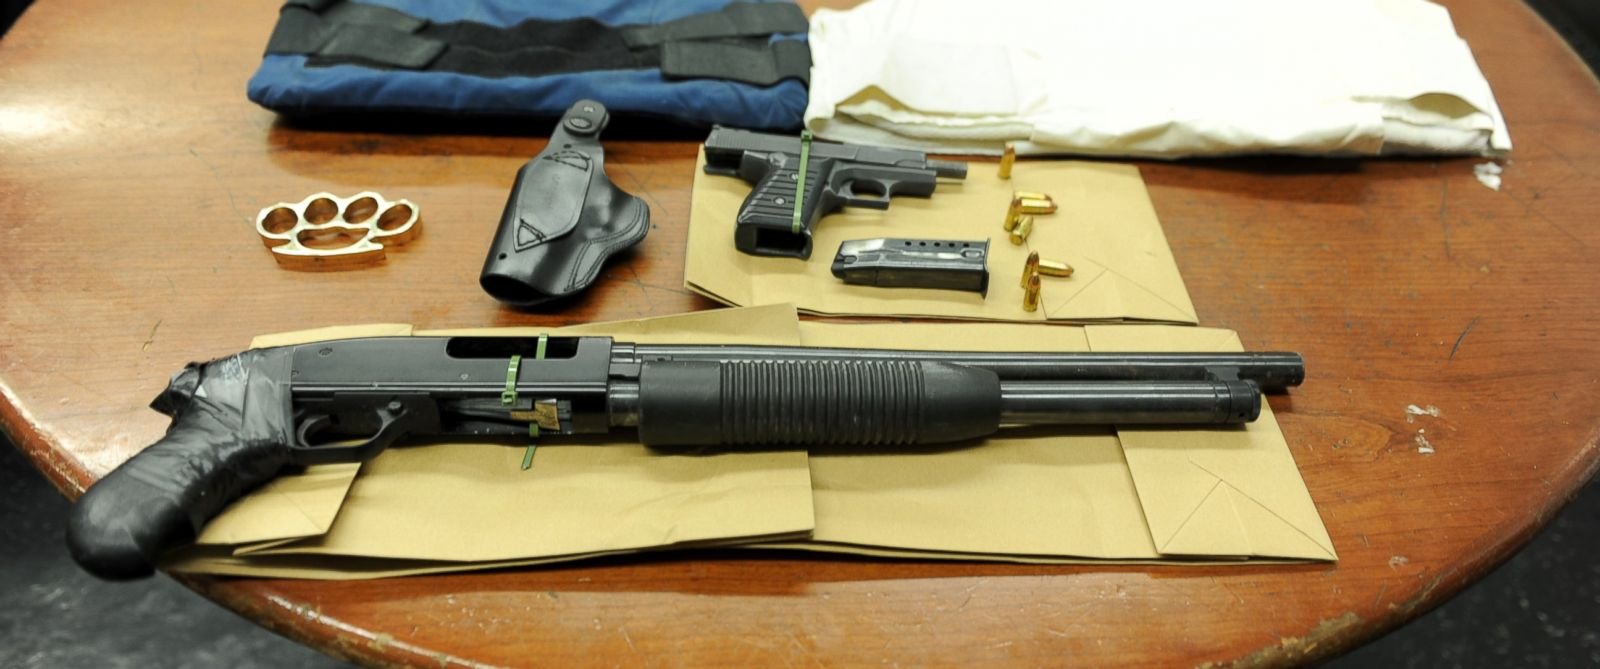 PHOTO: The NYPD said these weapons were confiscated from a suspect who was overheard making threats about killing police.